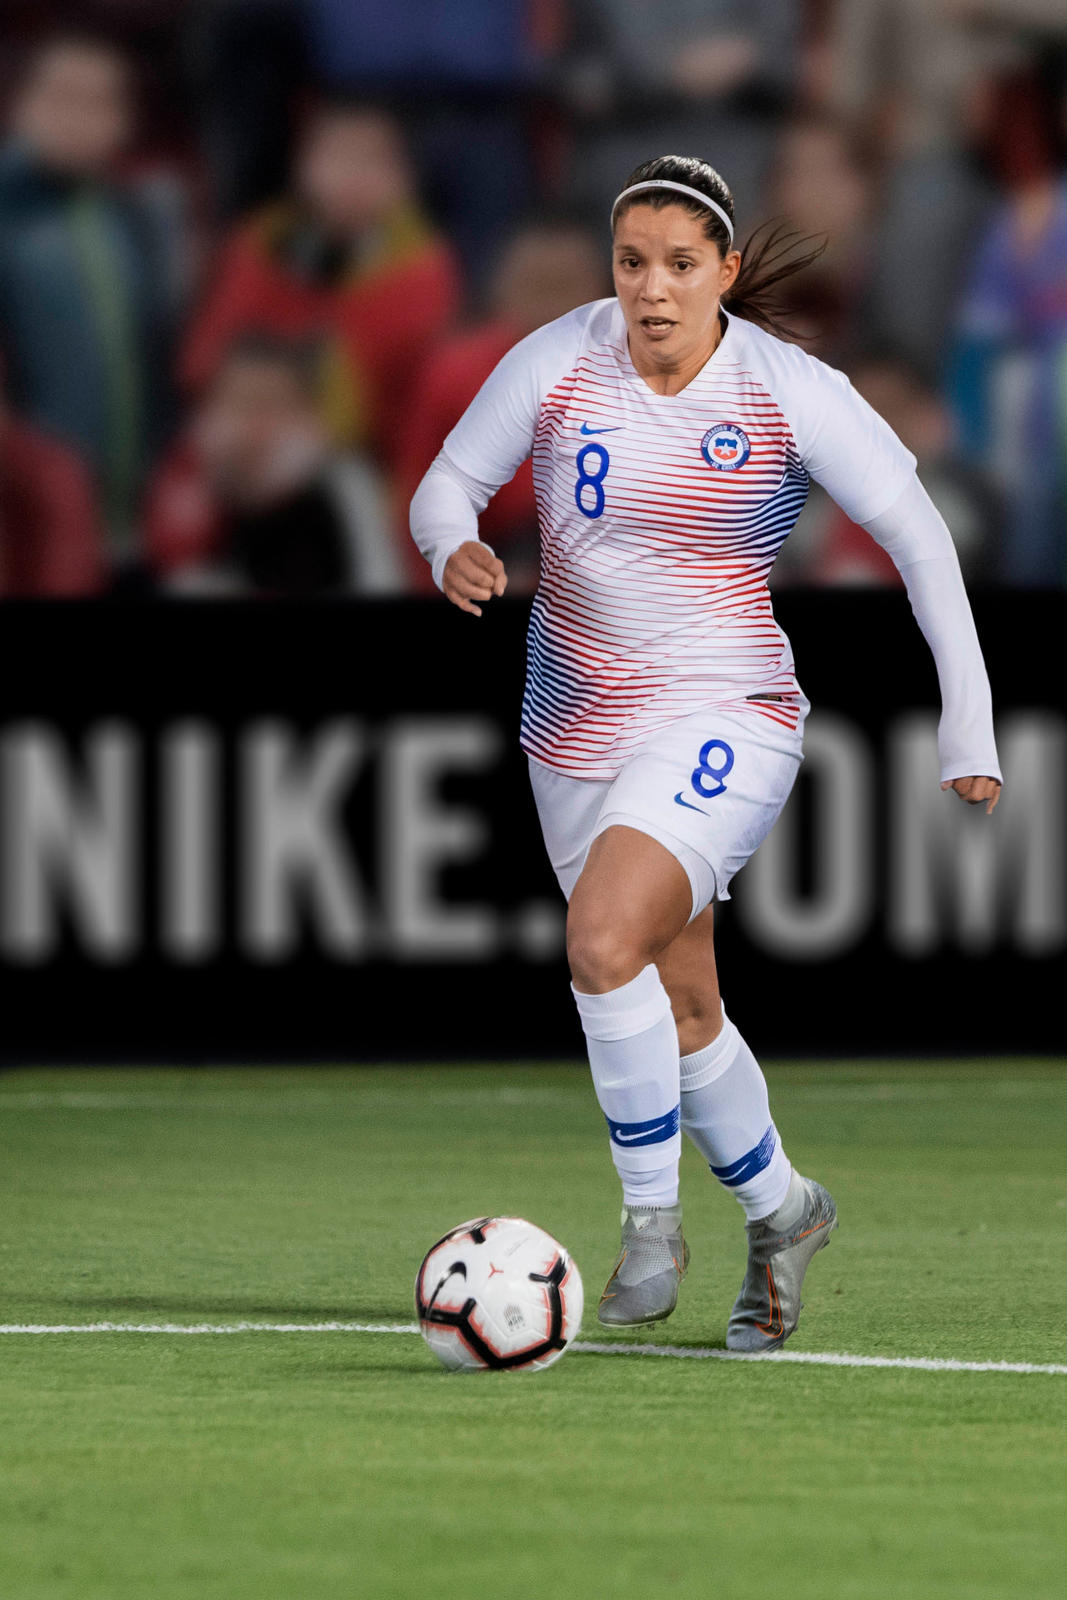 chile-national-team-kit-2019-performance-001_85992.jpg